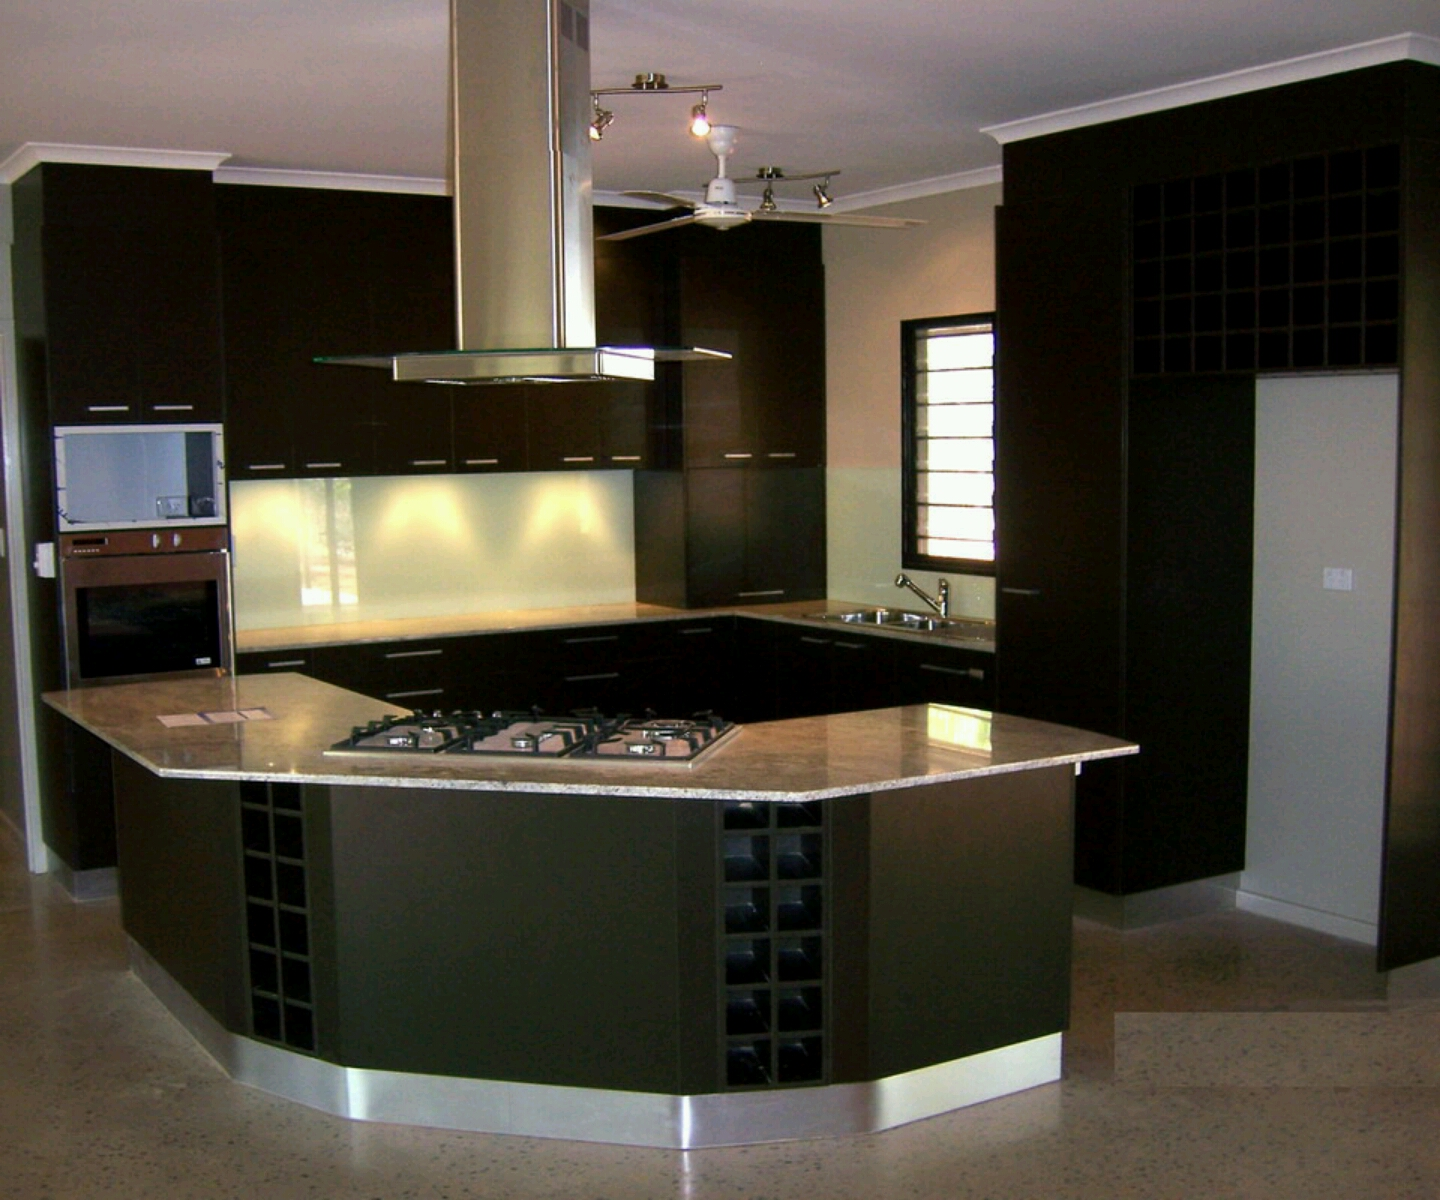 New Home Designs Latest Ultra Modern Kitchen Designs Ideas: New Home Designs Latest.: Modern Kitchen Cabinets Designs